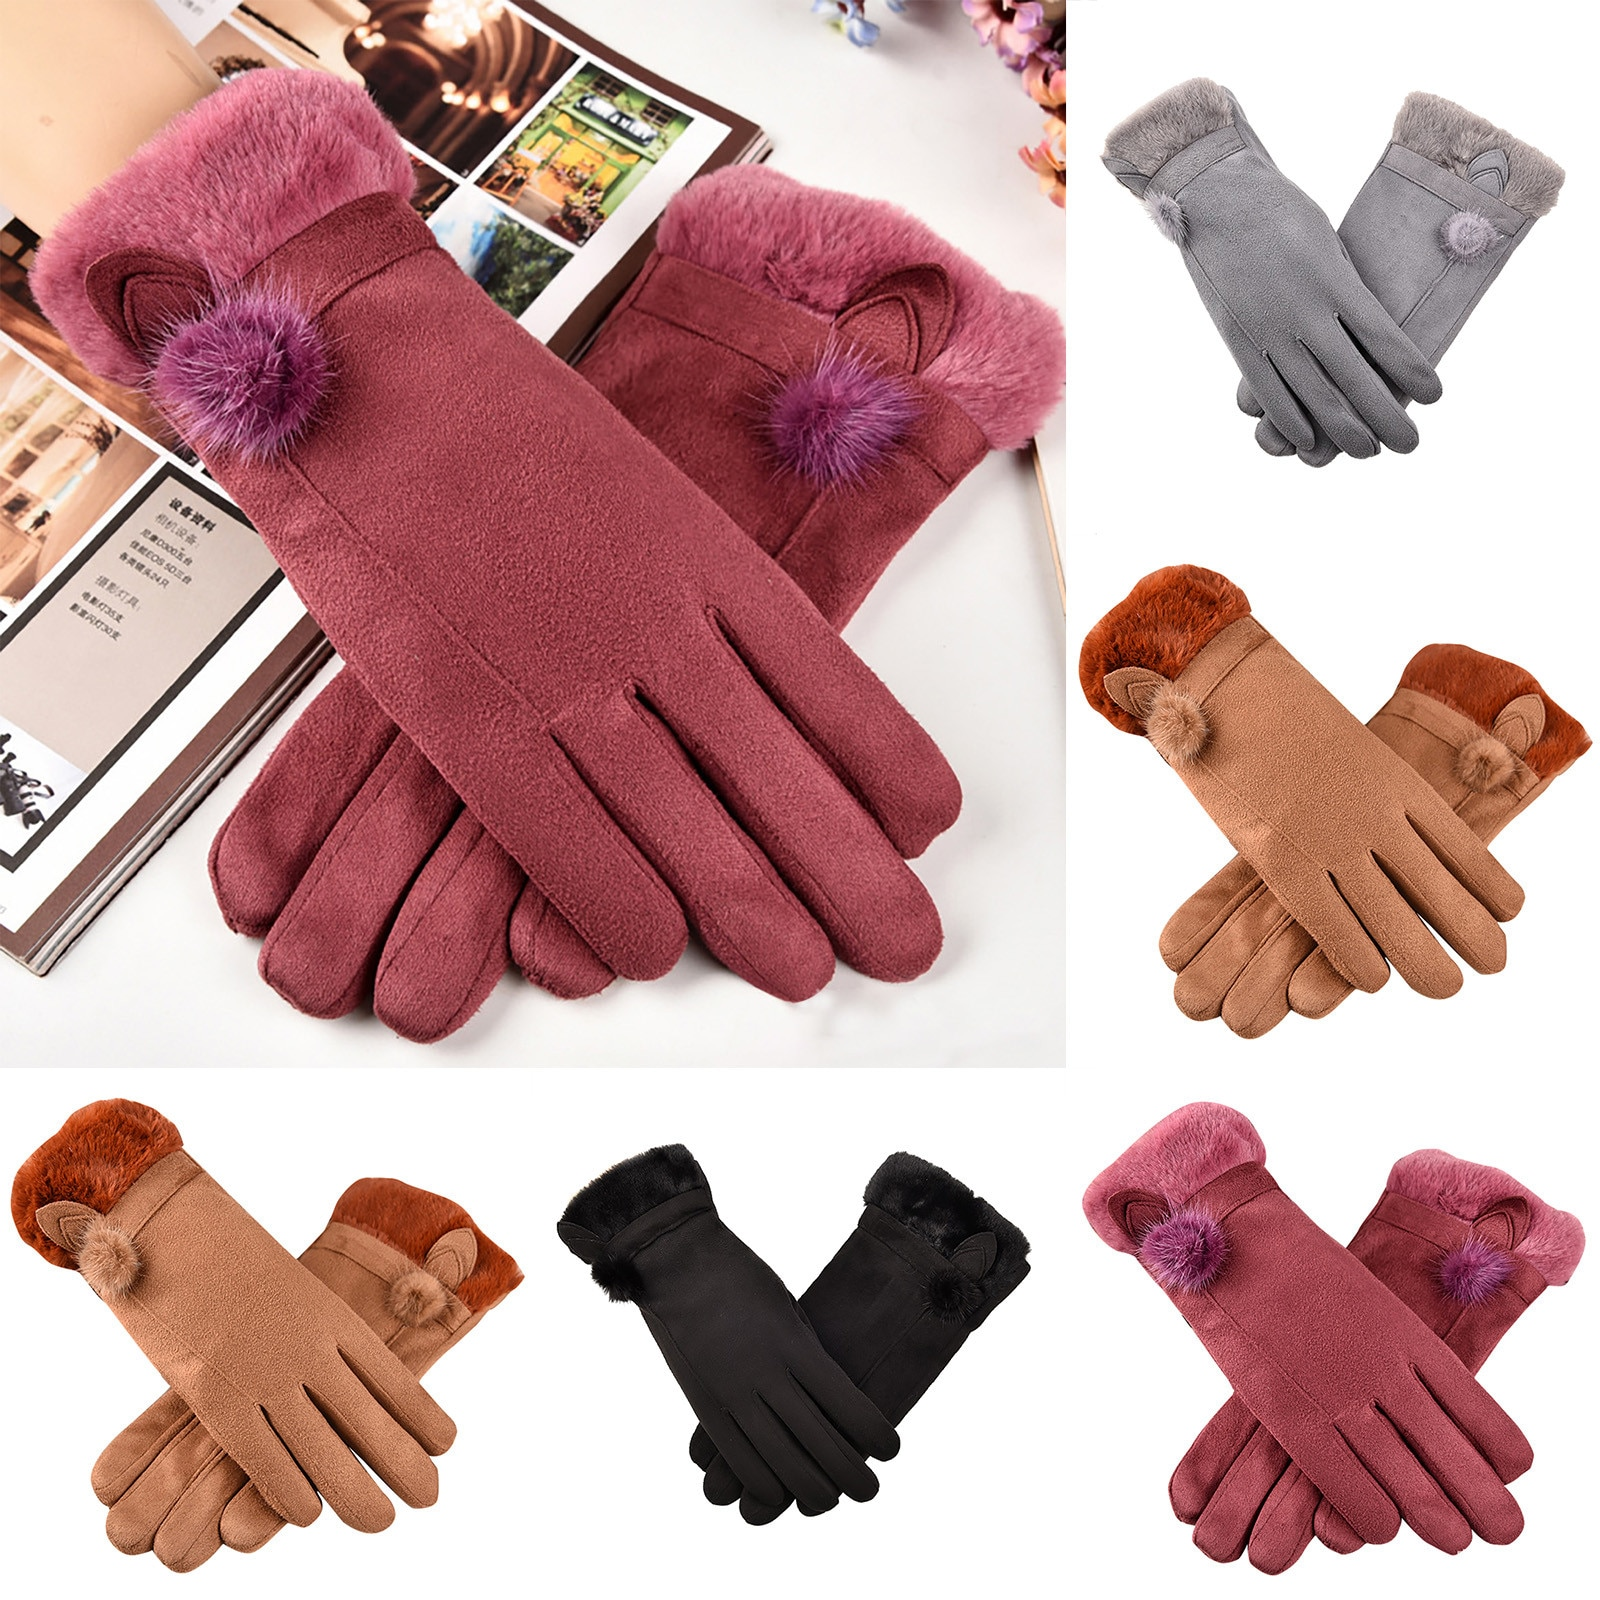 Female Winter Warm Knitted Full Finger Gloves Men Solid Woolen Touch Screen Mittens Women Thick Warm Cycling Driving перчатки